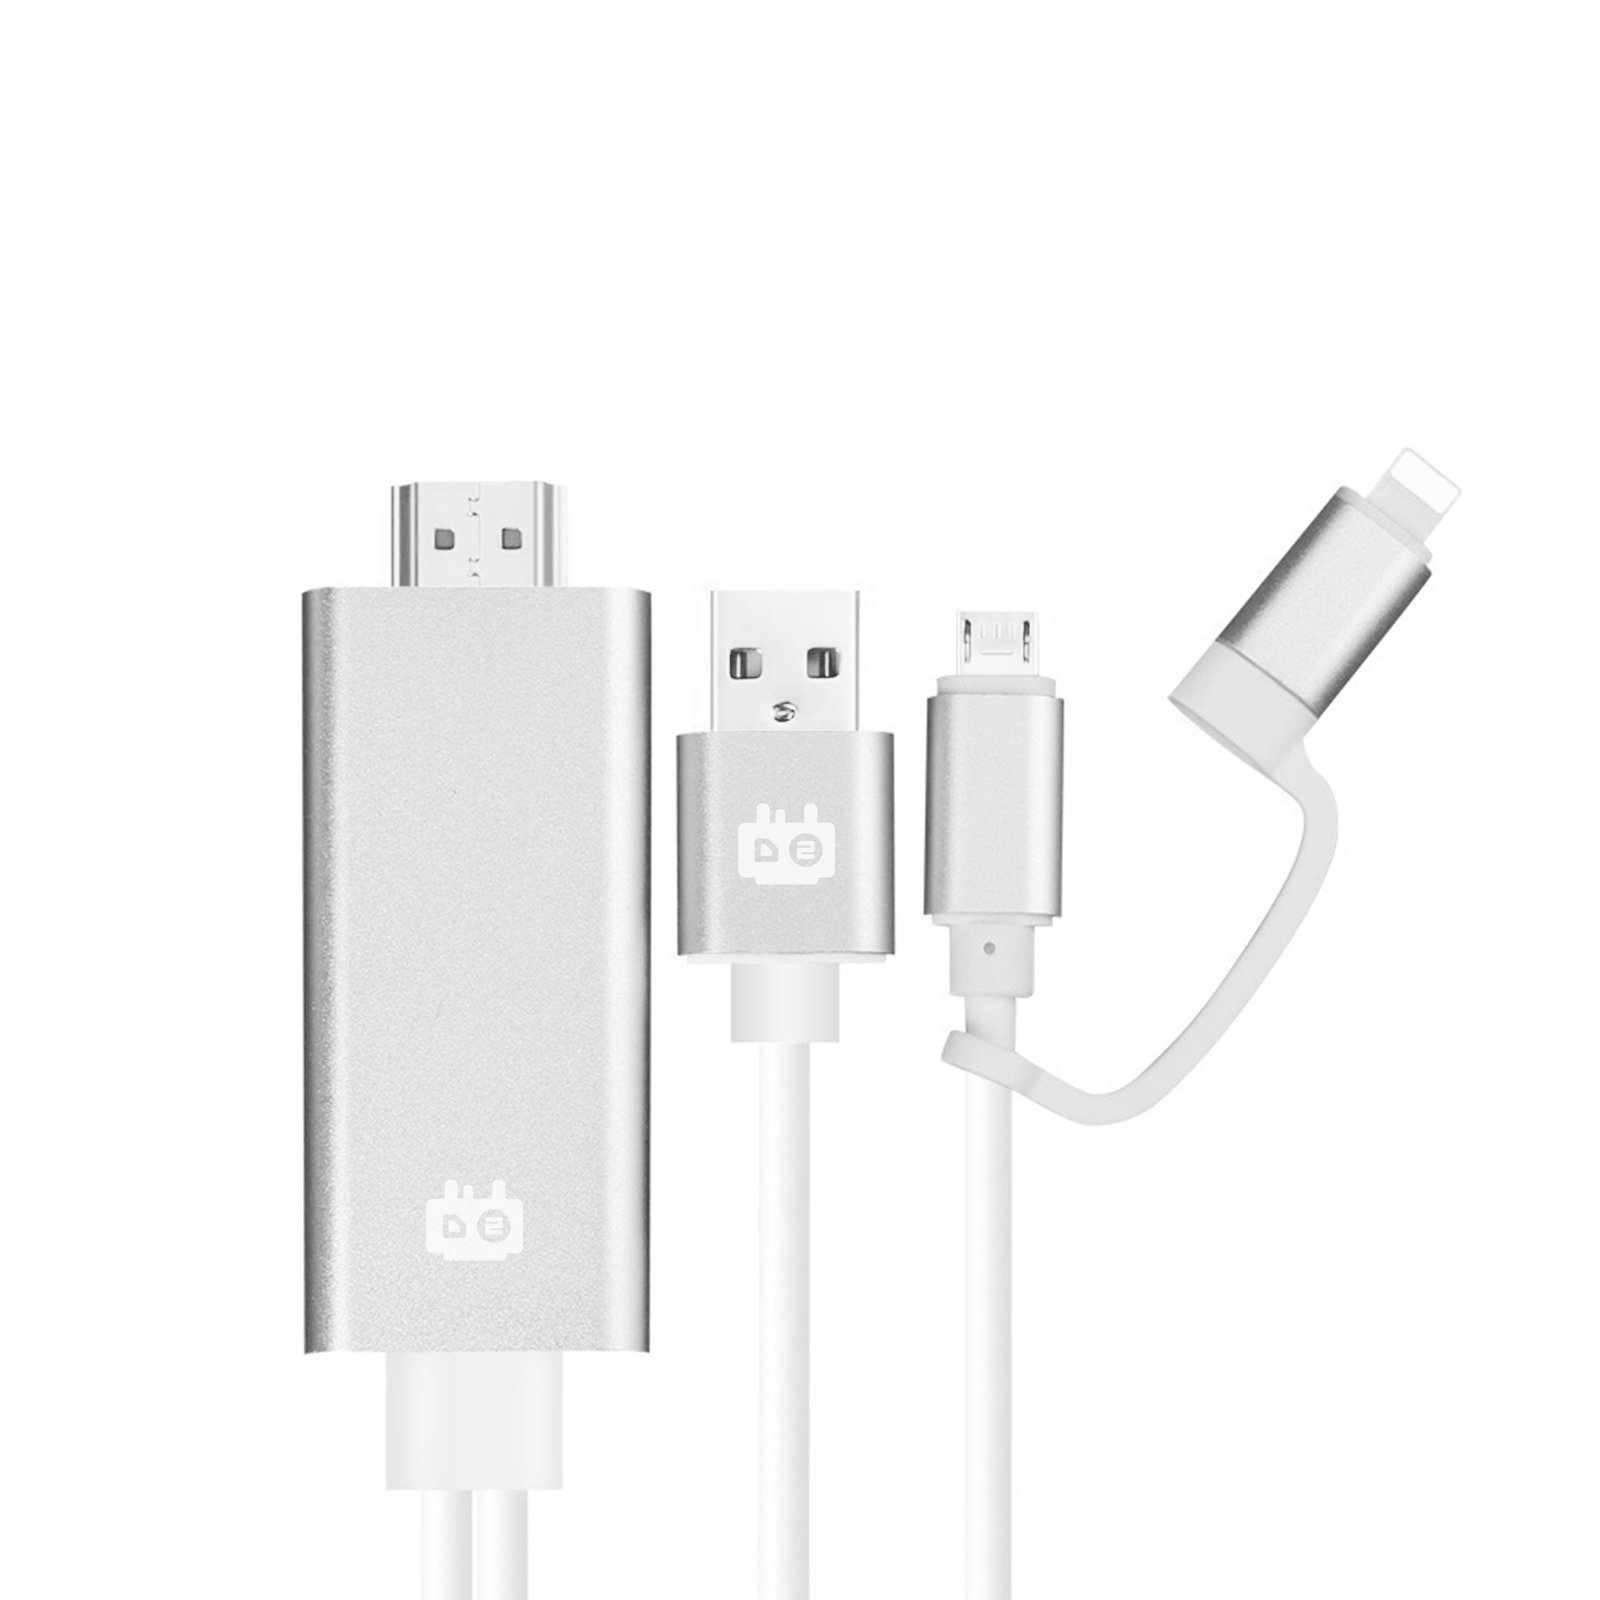 HDMI Cable Lighting/Micro USB 1080P 6 ft 2in1 to TV, HDCP Connector Adapter w/USB powered, Mirroring Cellphone Screen to TV/Projector/Monitor for IOS and Android Micro smart devices by D2tech by D2tech